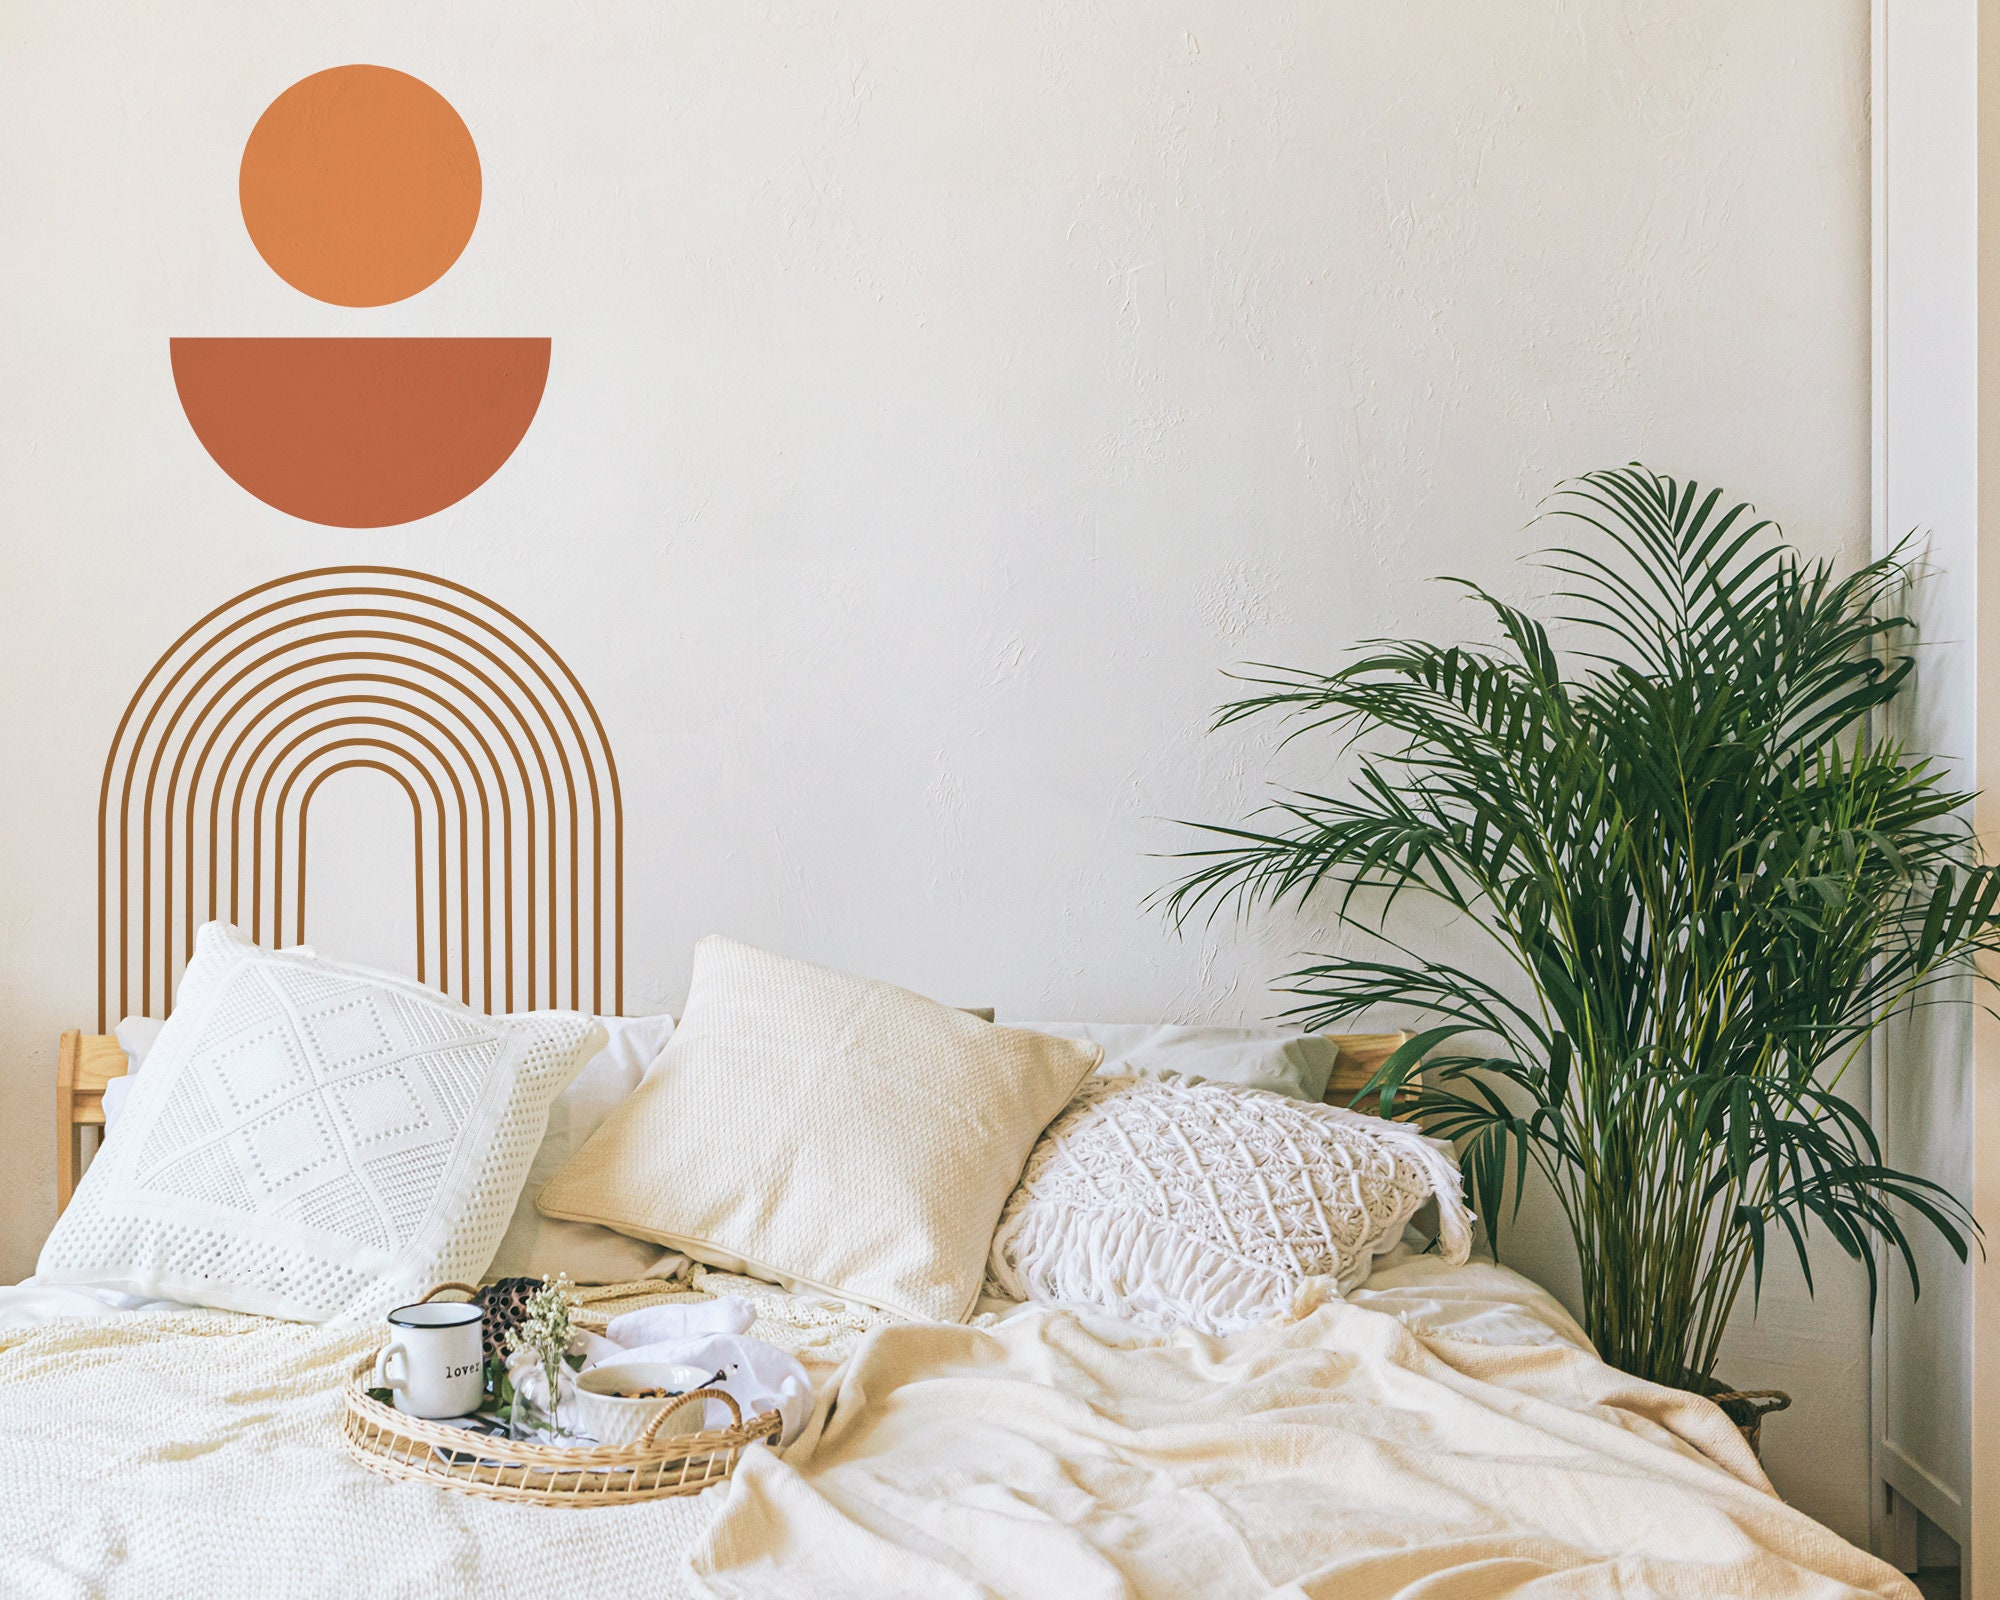 Boho Colorblock Wall Decals Removable Wall Stickers Abstract Modern Wall Art Geometric Wall Decor